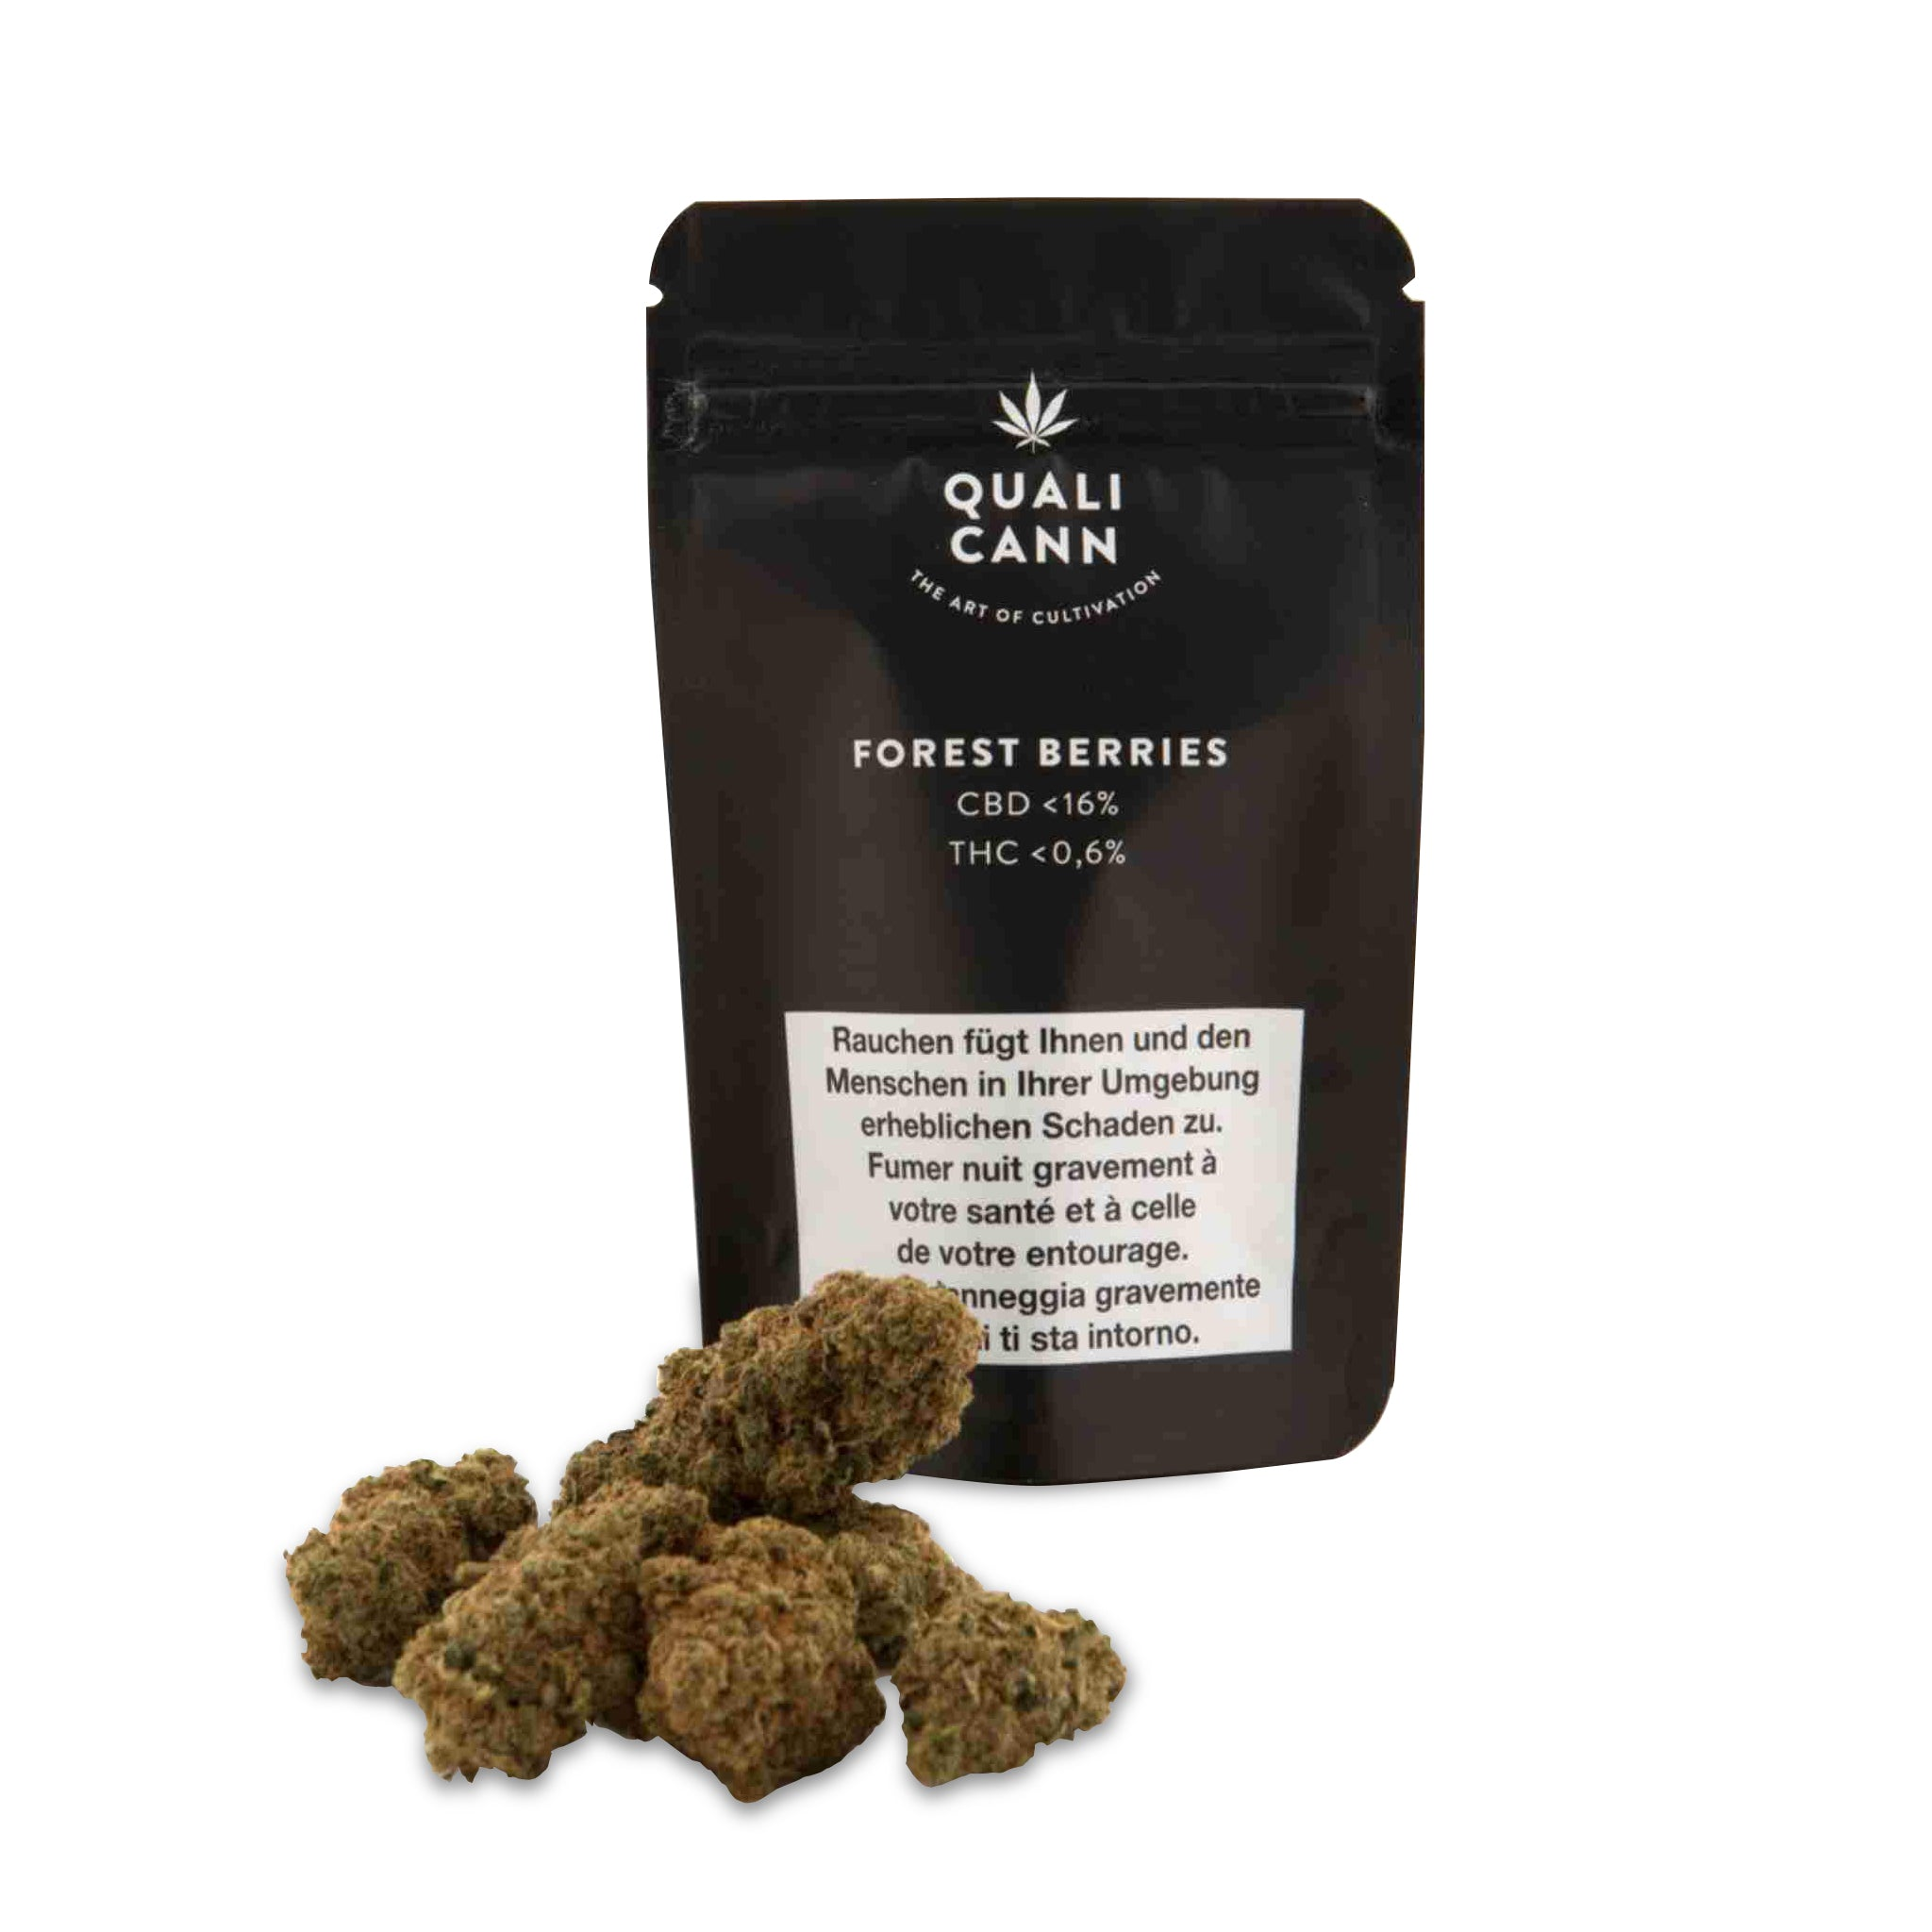 Forest Berries | Qualicann | CBD Cannabis | uWeed | Swiss CBD Shop | Buy Online Shop CBD Switzerland